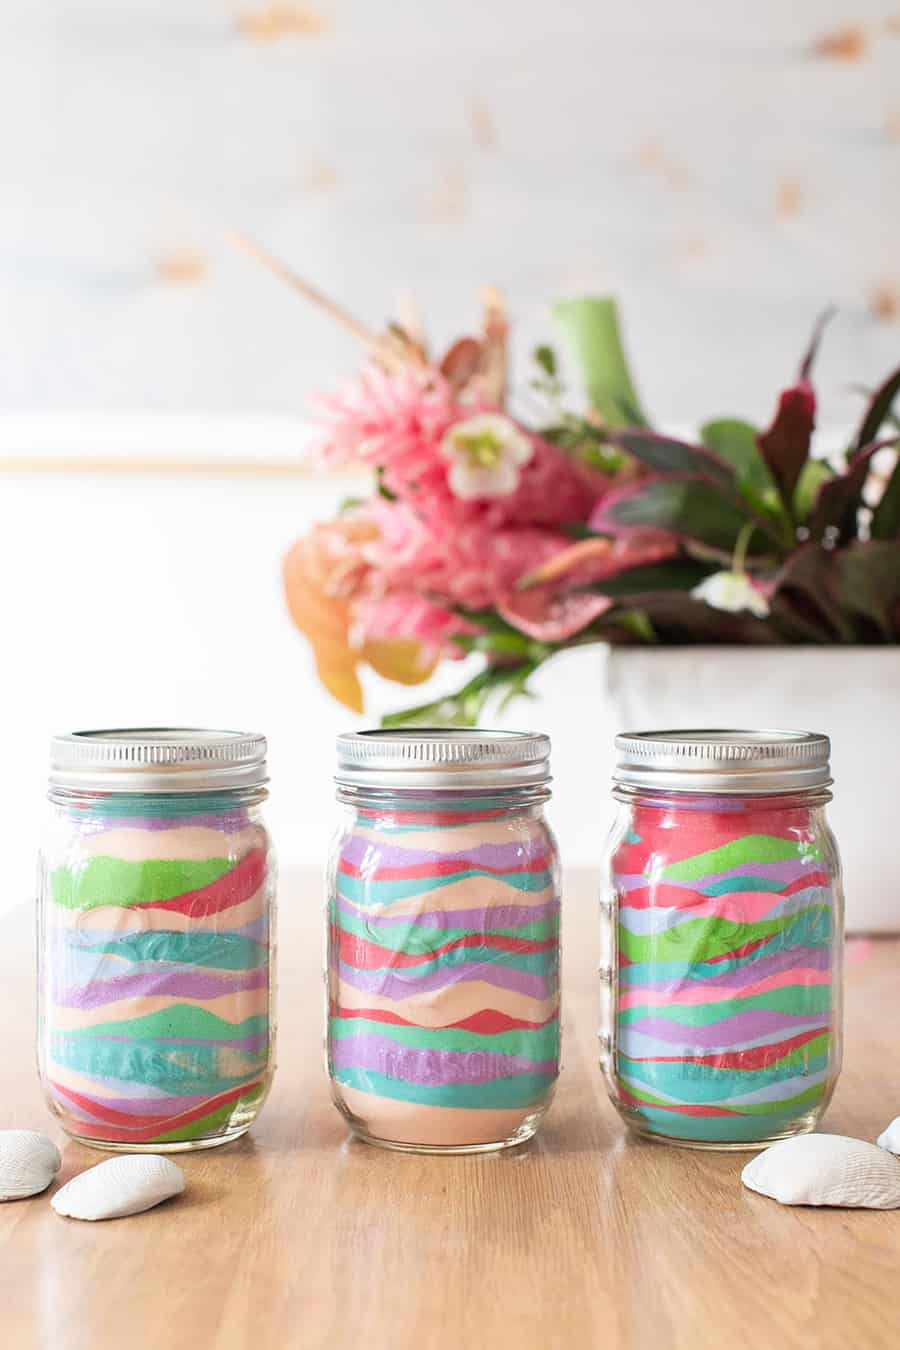 Sand art in jars DIY for a tropical party